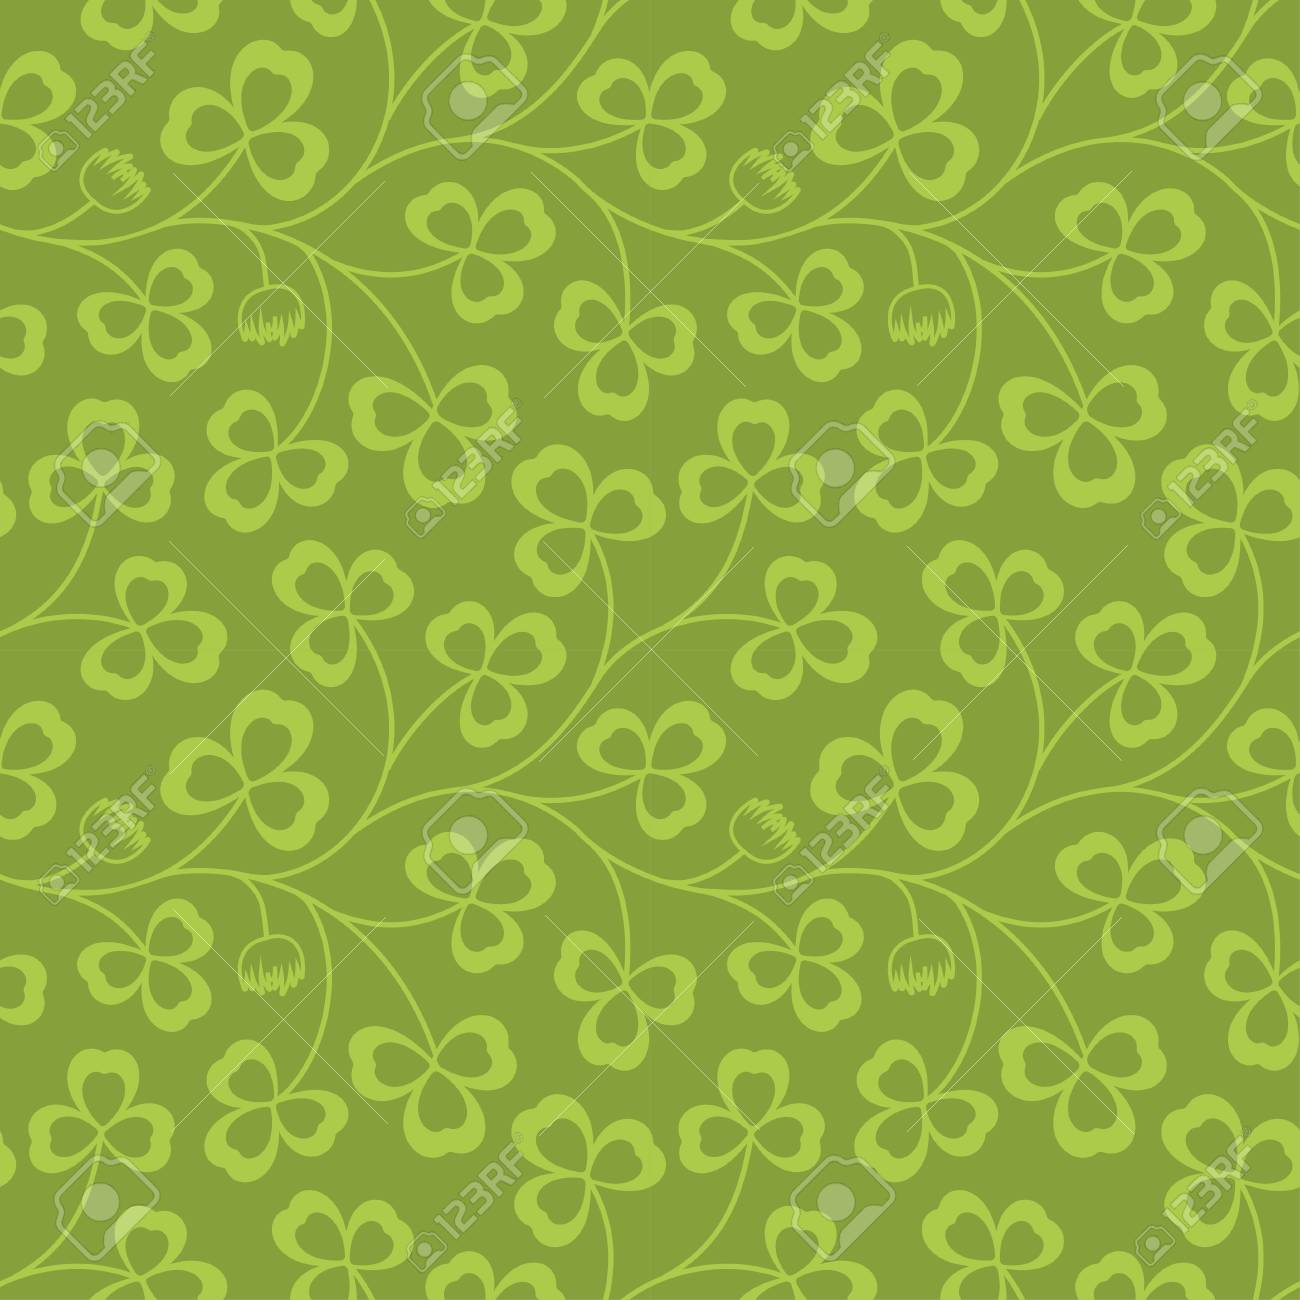 Clover Leaves Seamless Pattern St Patrick S Day Green Background